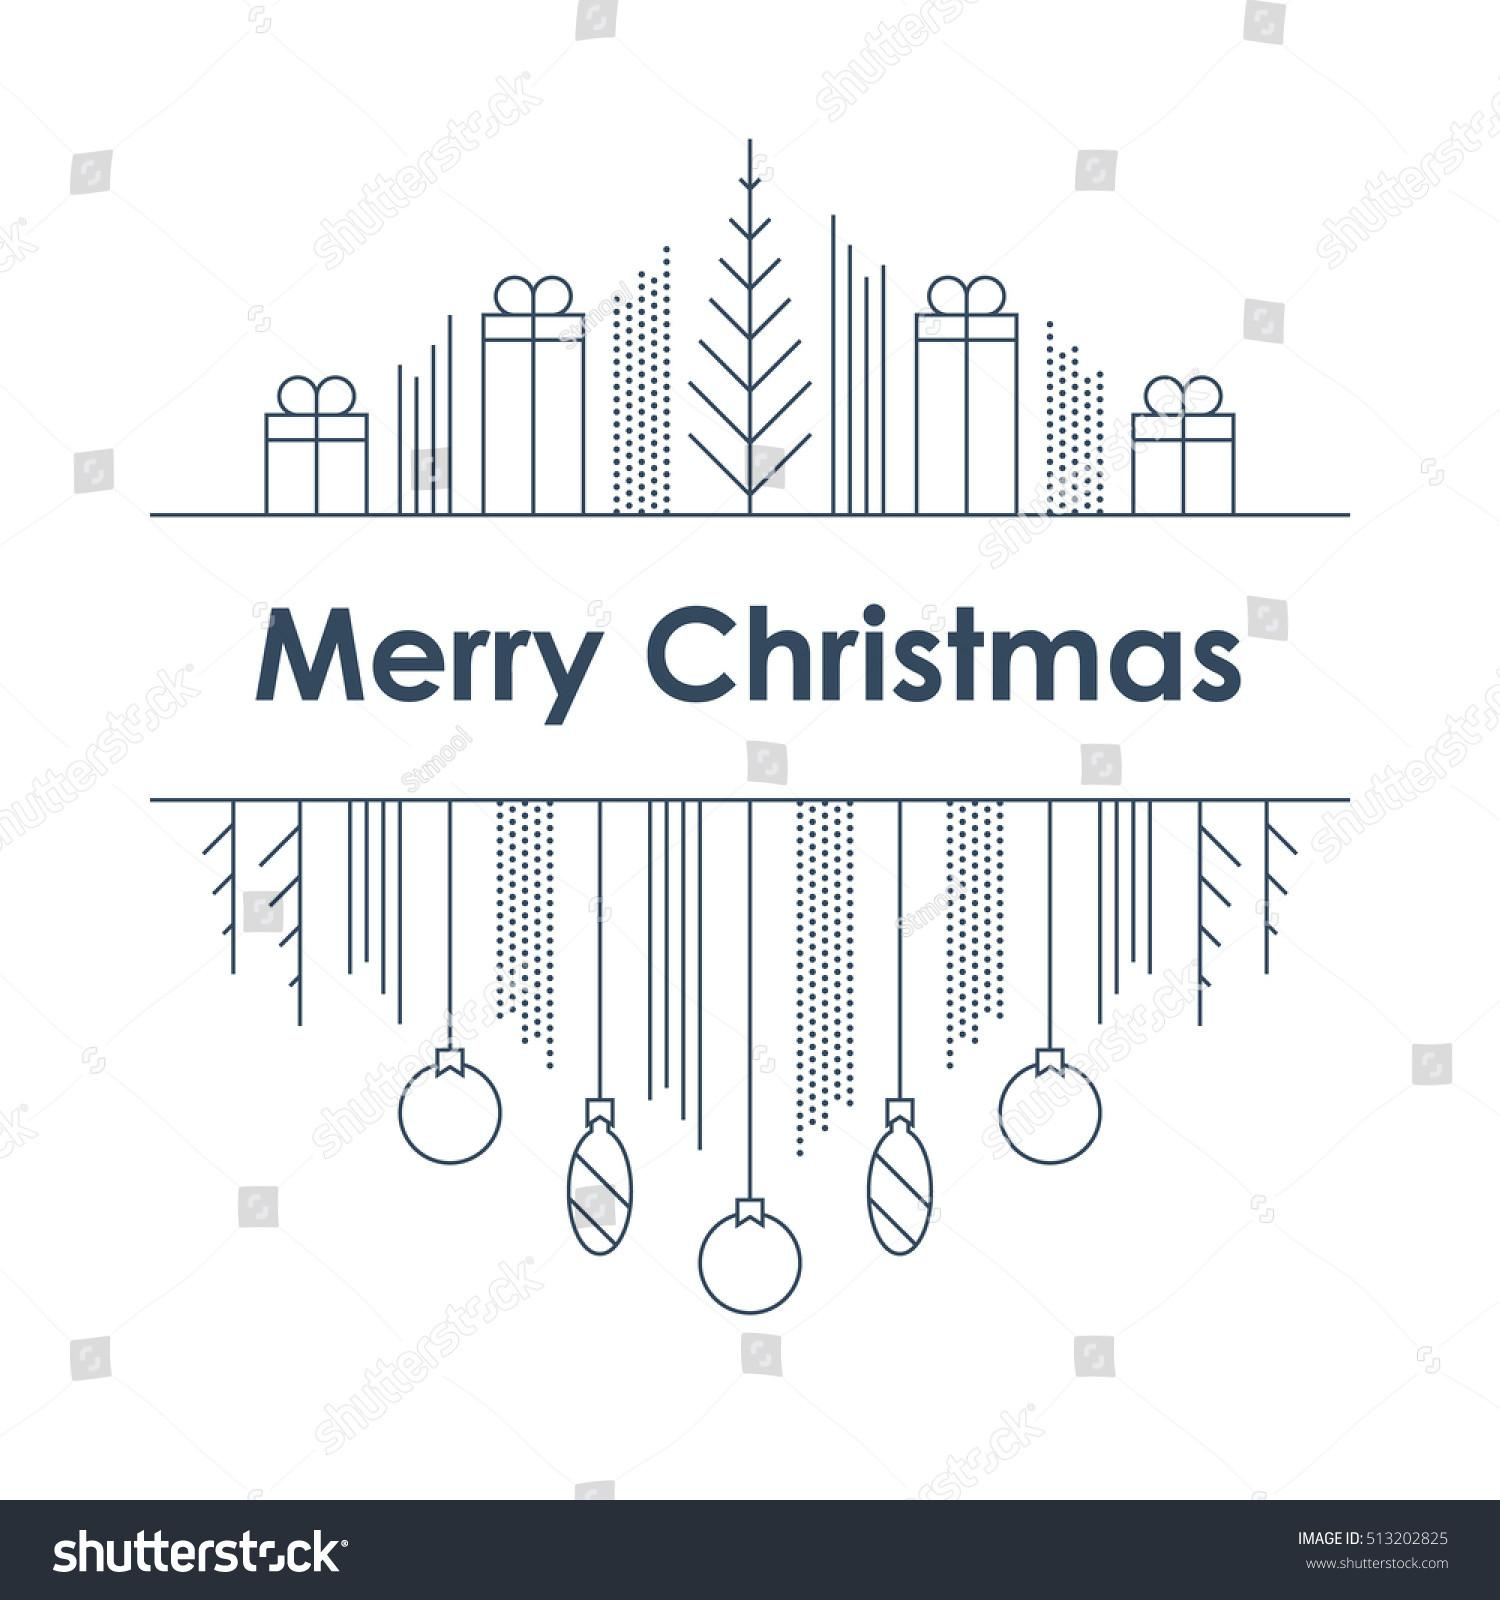 Happy New Year Merry Christmas Linear Stock Vector